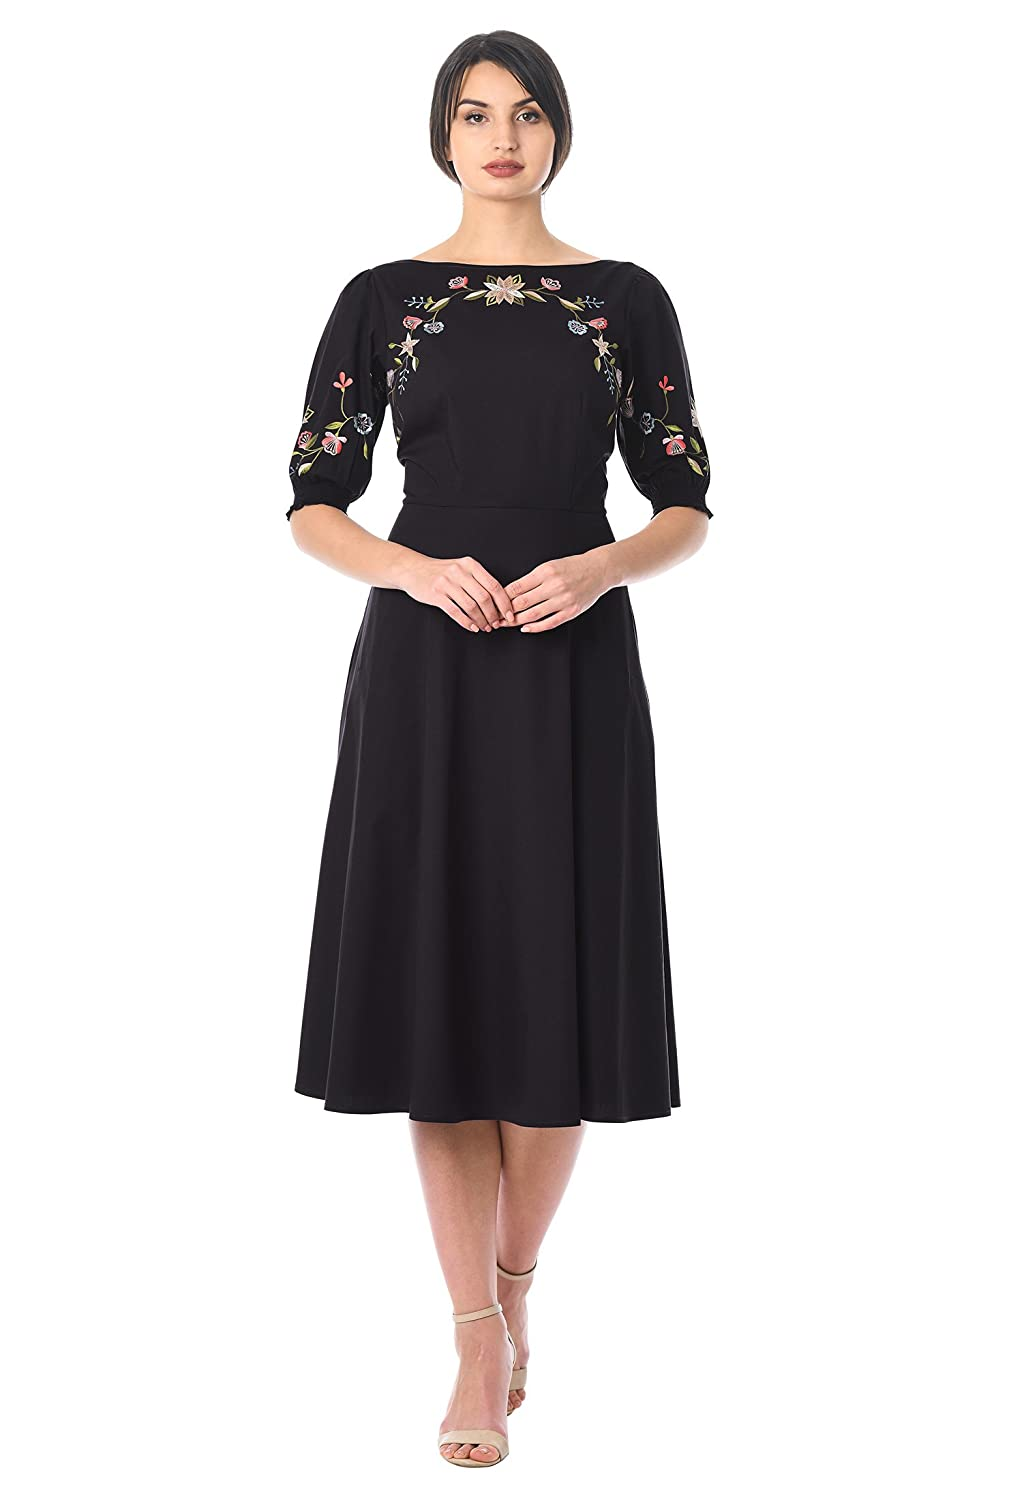 Vintage Evening Dresses and Formal Evening Gowns eShakti Womens Floral Embellished Poplin Dress $59.95 AT vintagedancer.com